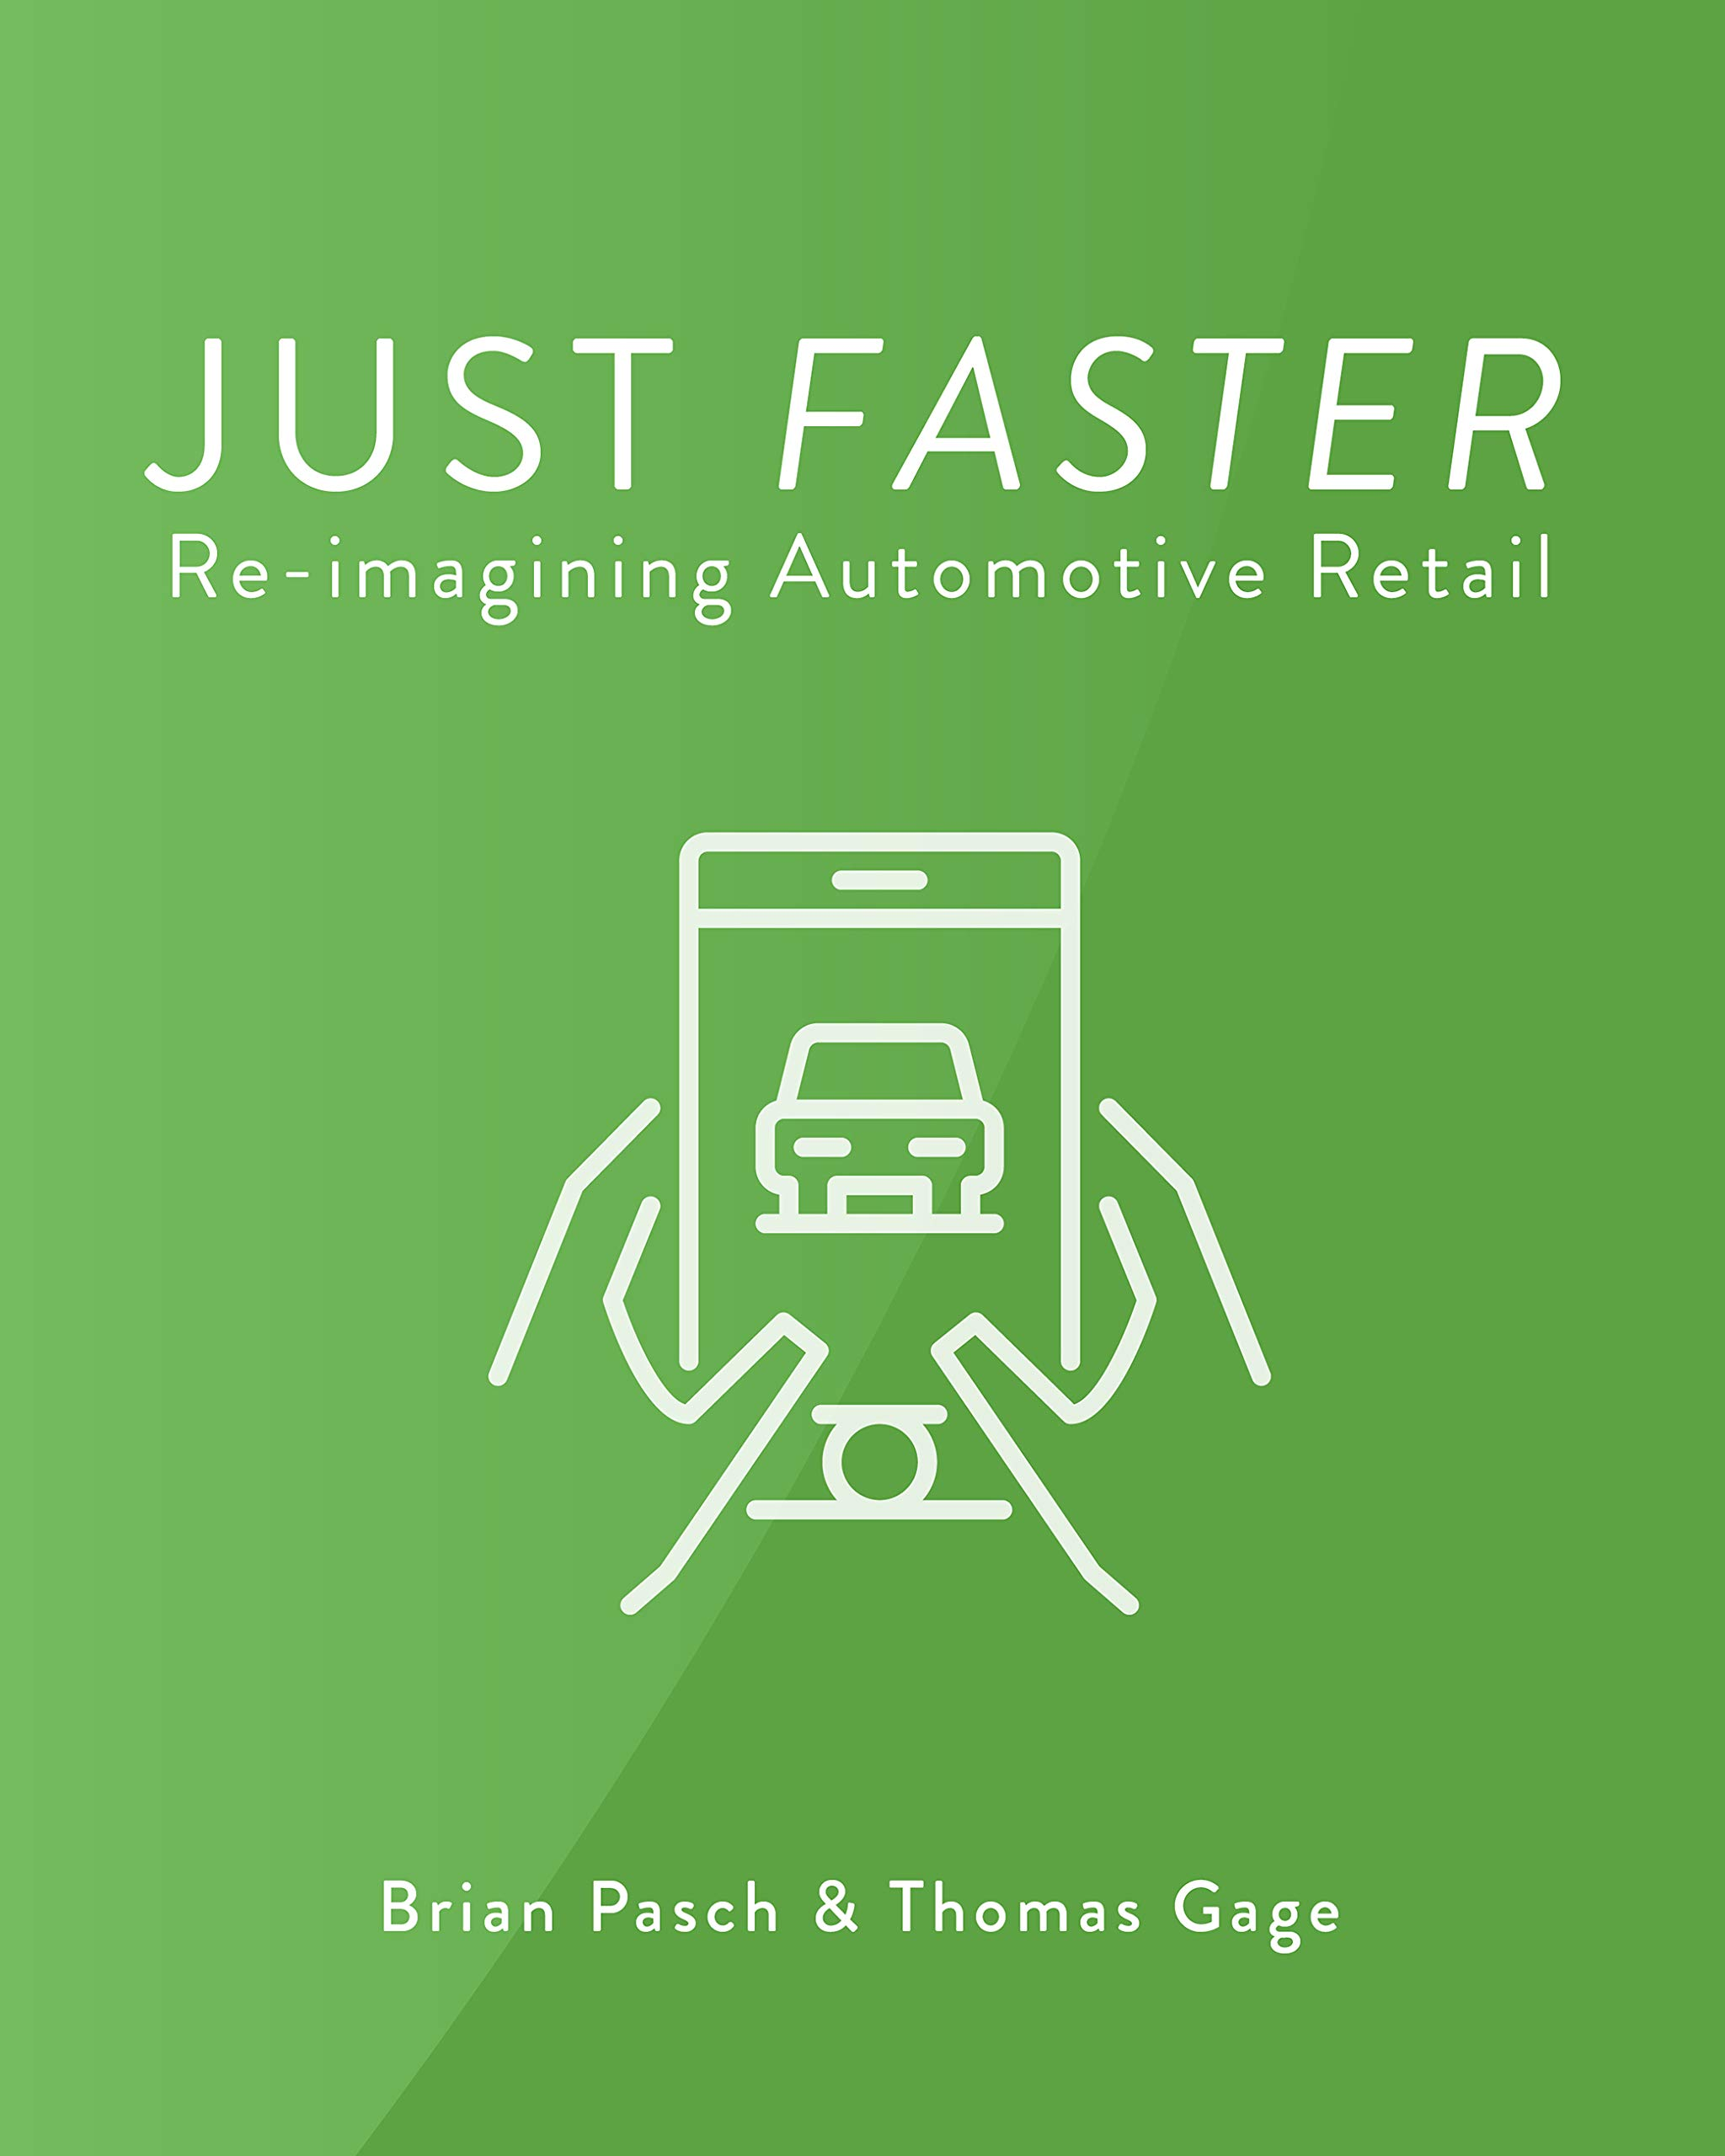 Just Faster: Re-imagining Automotive Retail